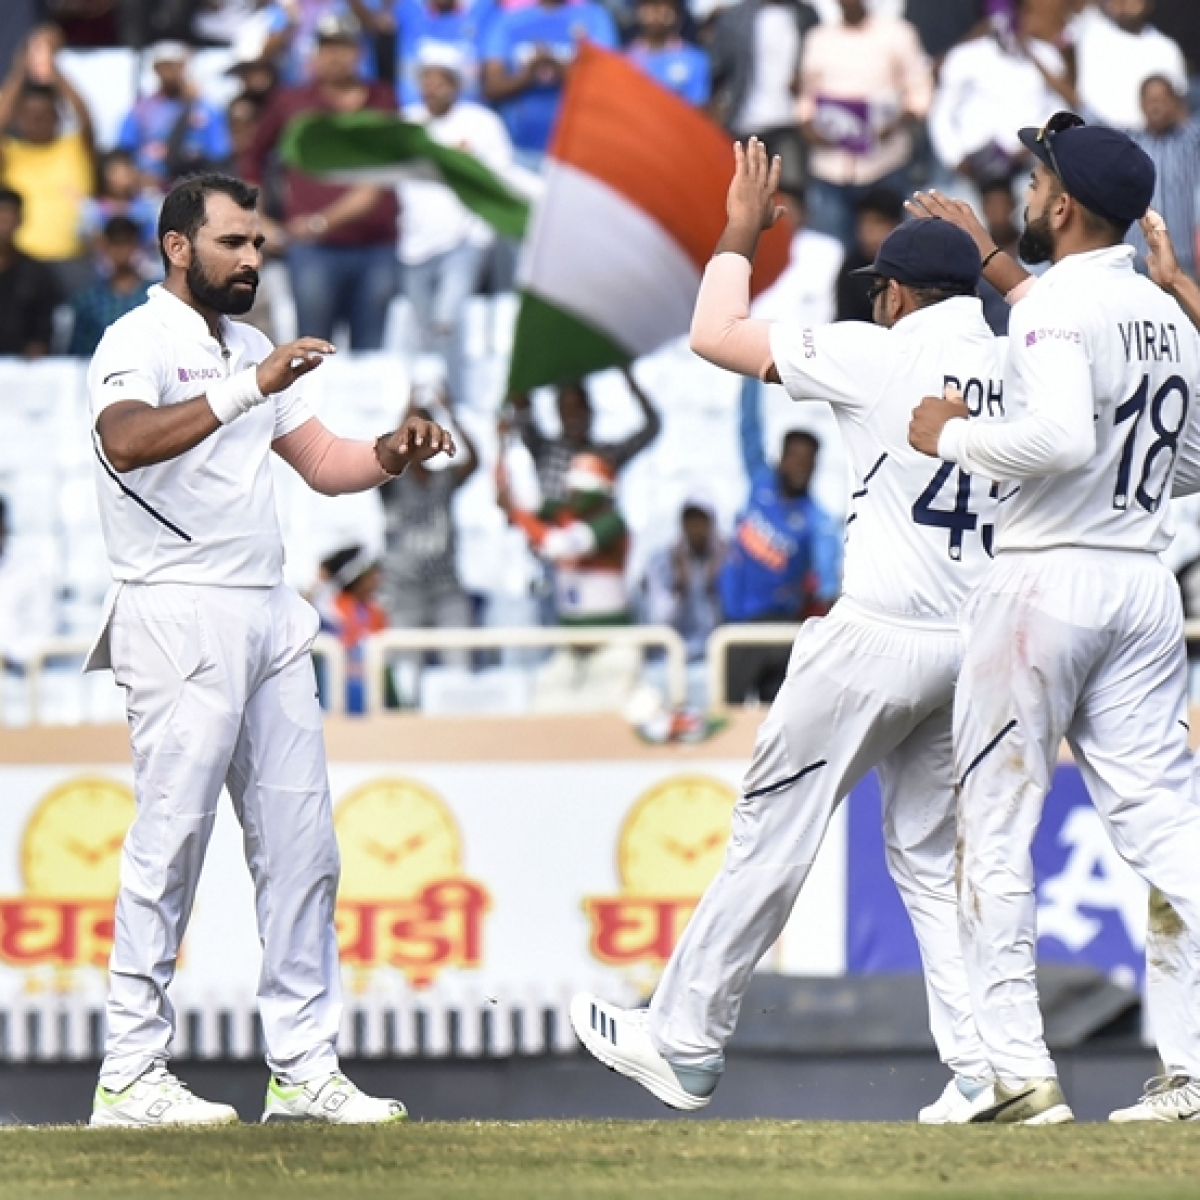 With SA tattering at 132/8, India look set to complete 3-0 whitewash